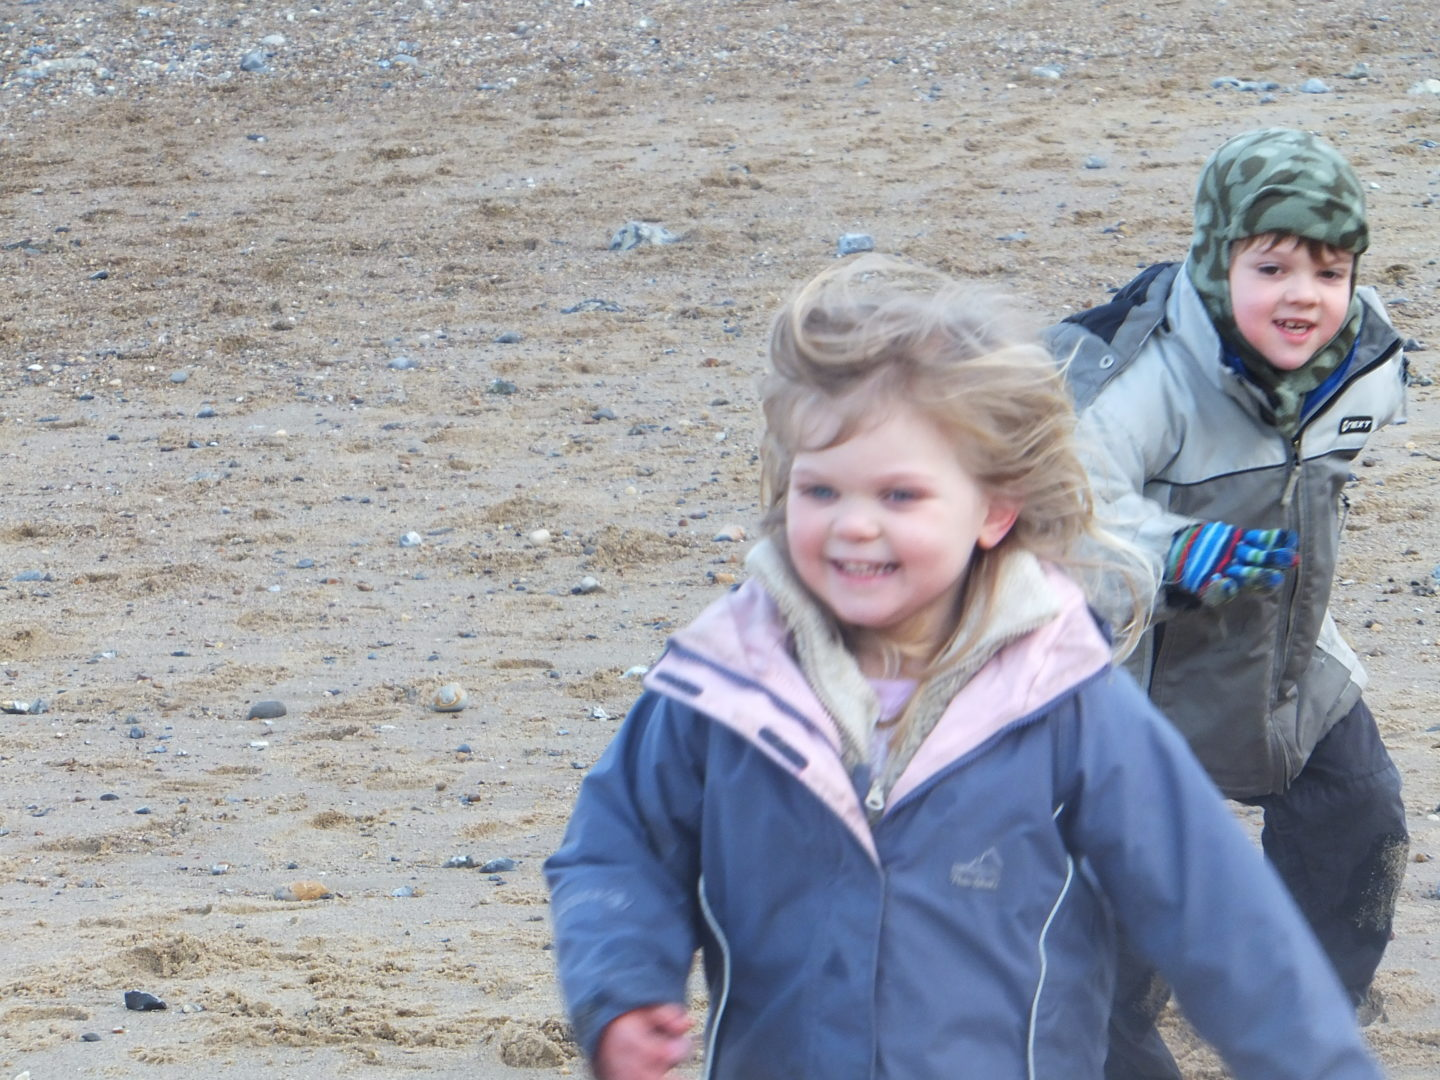 Rockpooling is great and you can also ahve a run around the beach to stay warm in colder weather